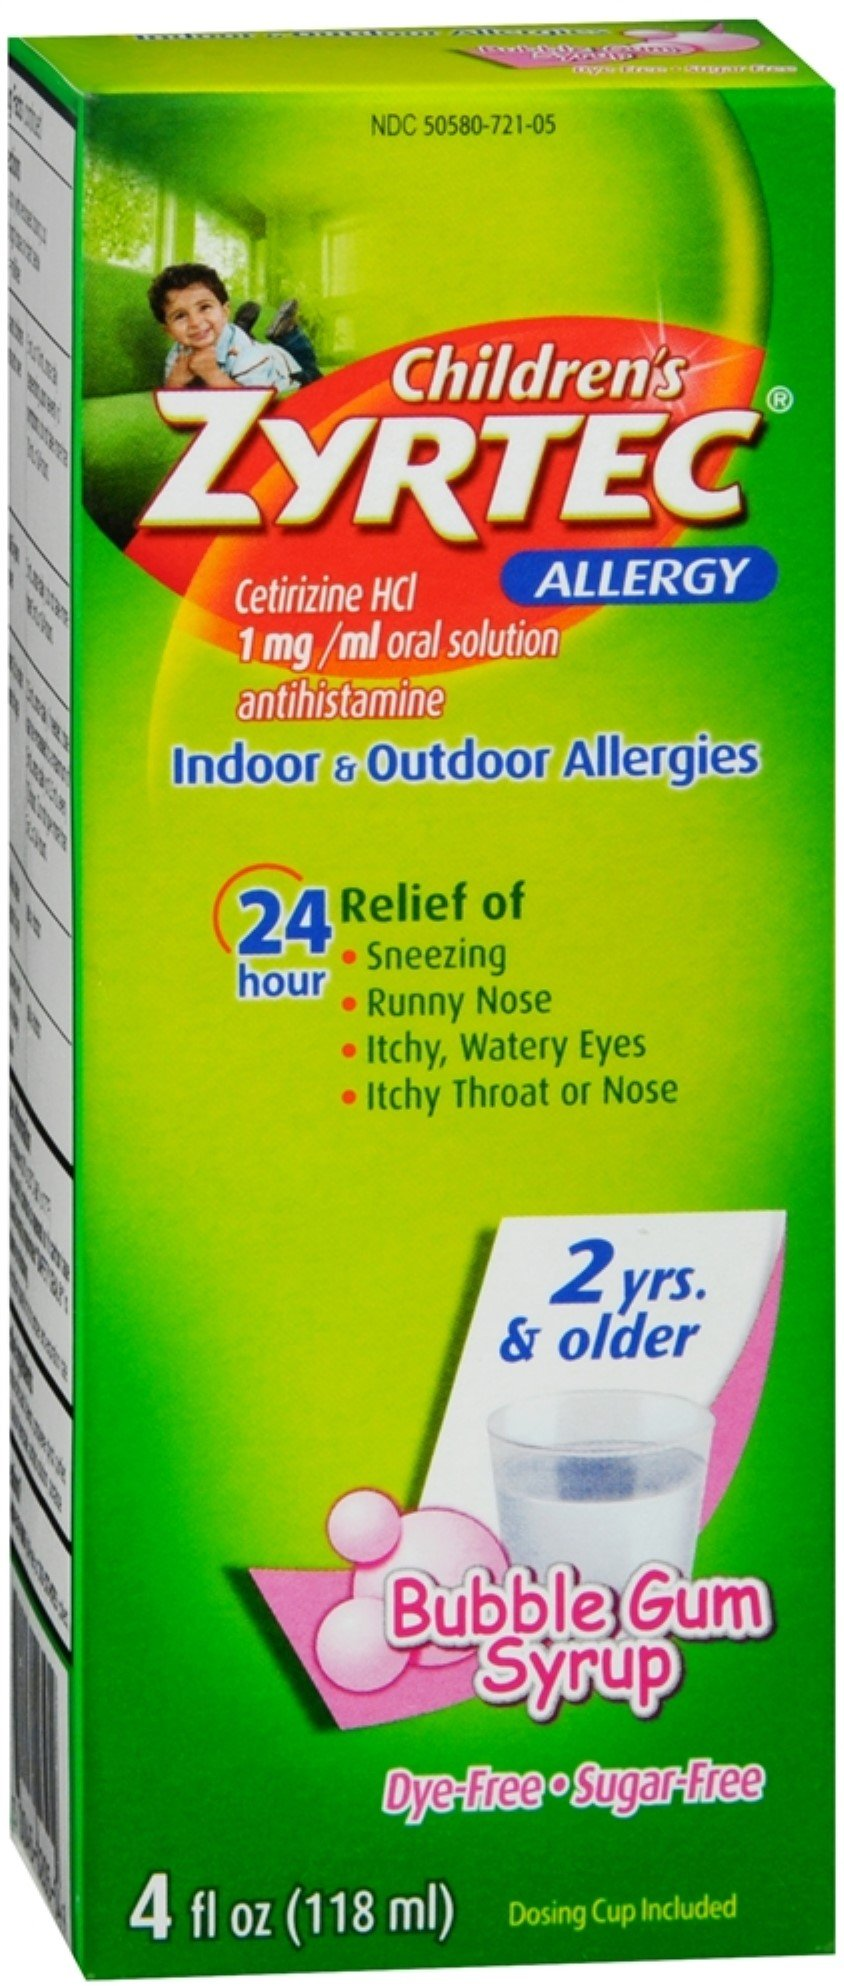 Zyrtec Children's Allergy Bubble Gum Syrup 4 oz (Pack of 8)